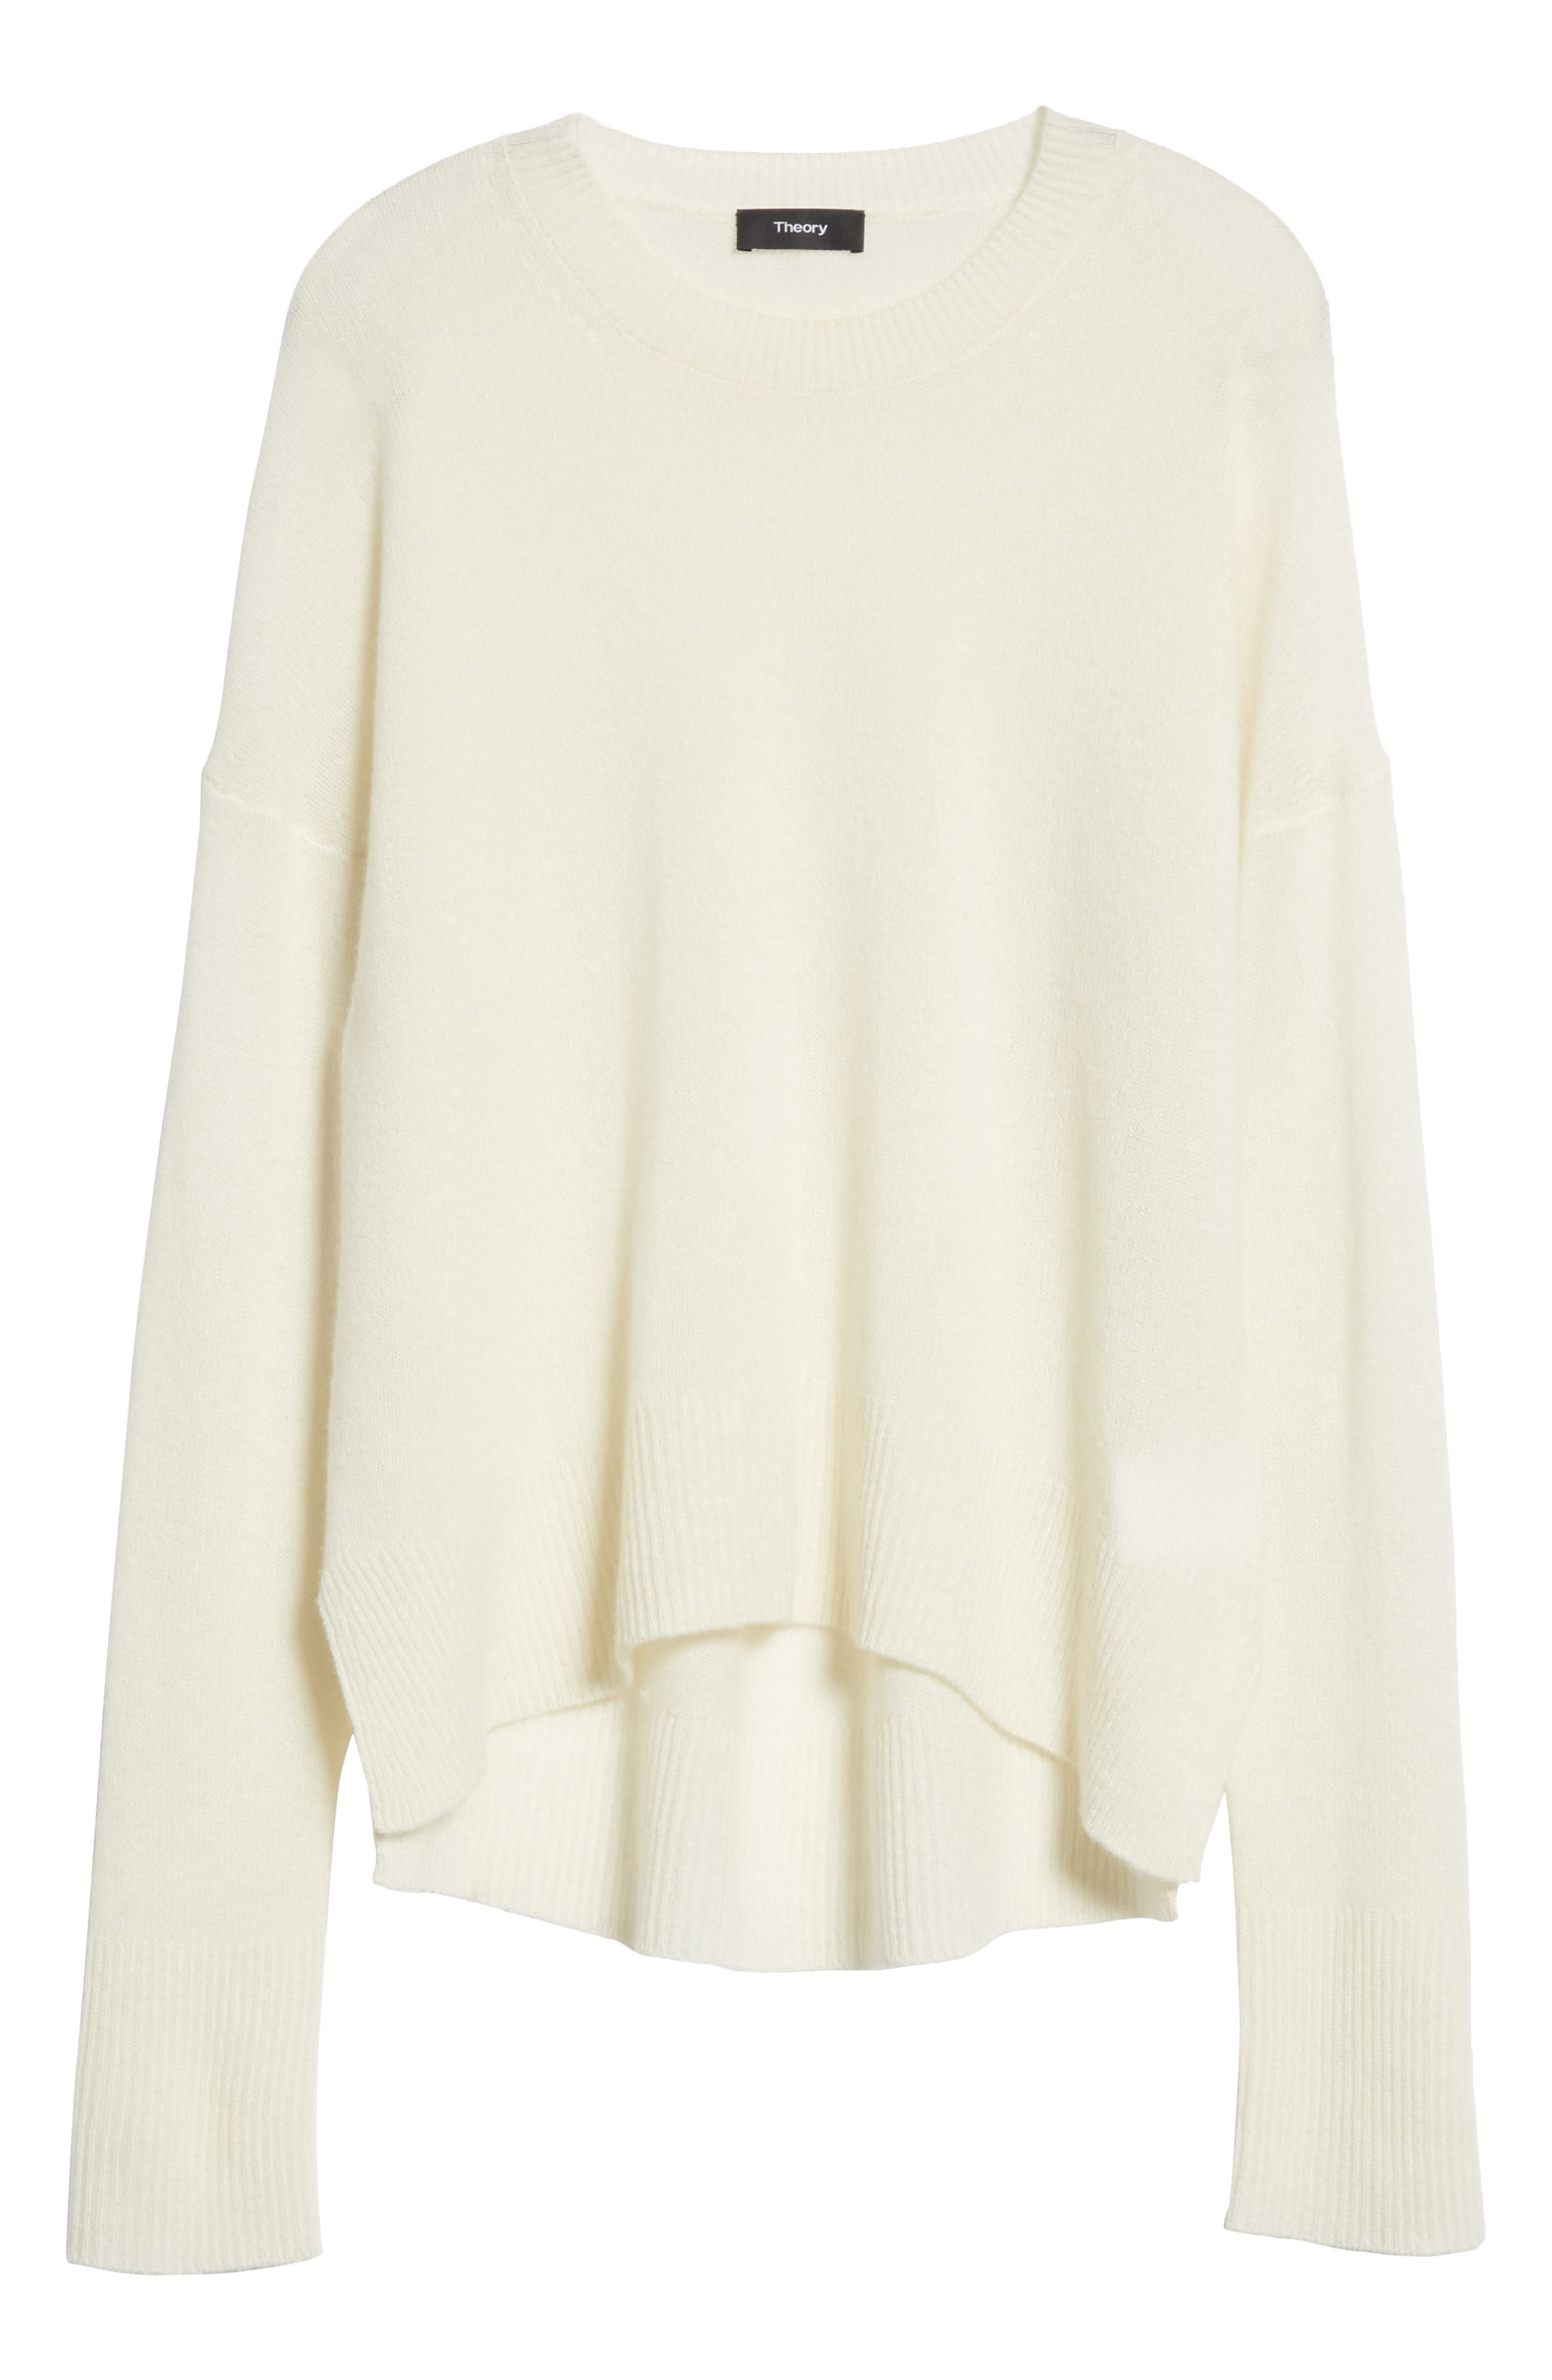 Karenia L Cashmere Sweater,                             Alternate thumbnail 6, color,                             Ivory